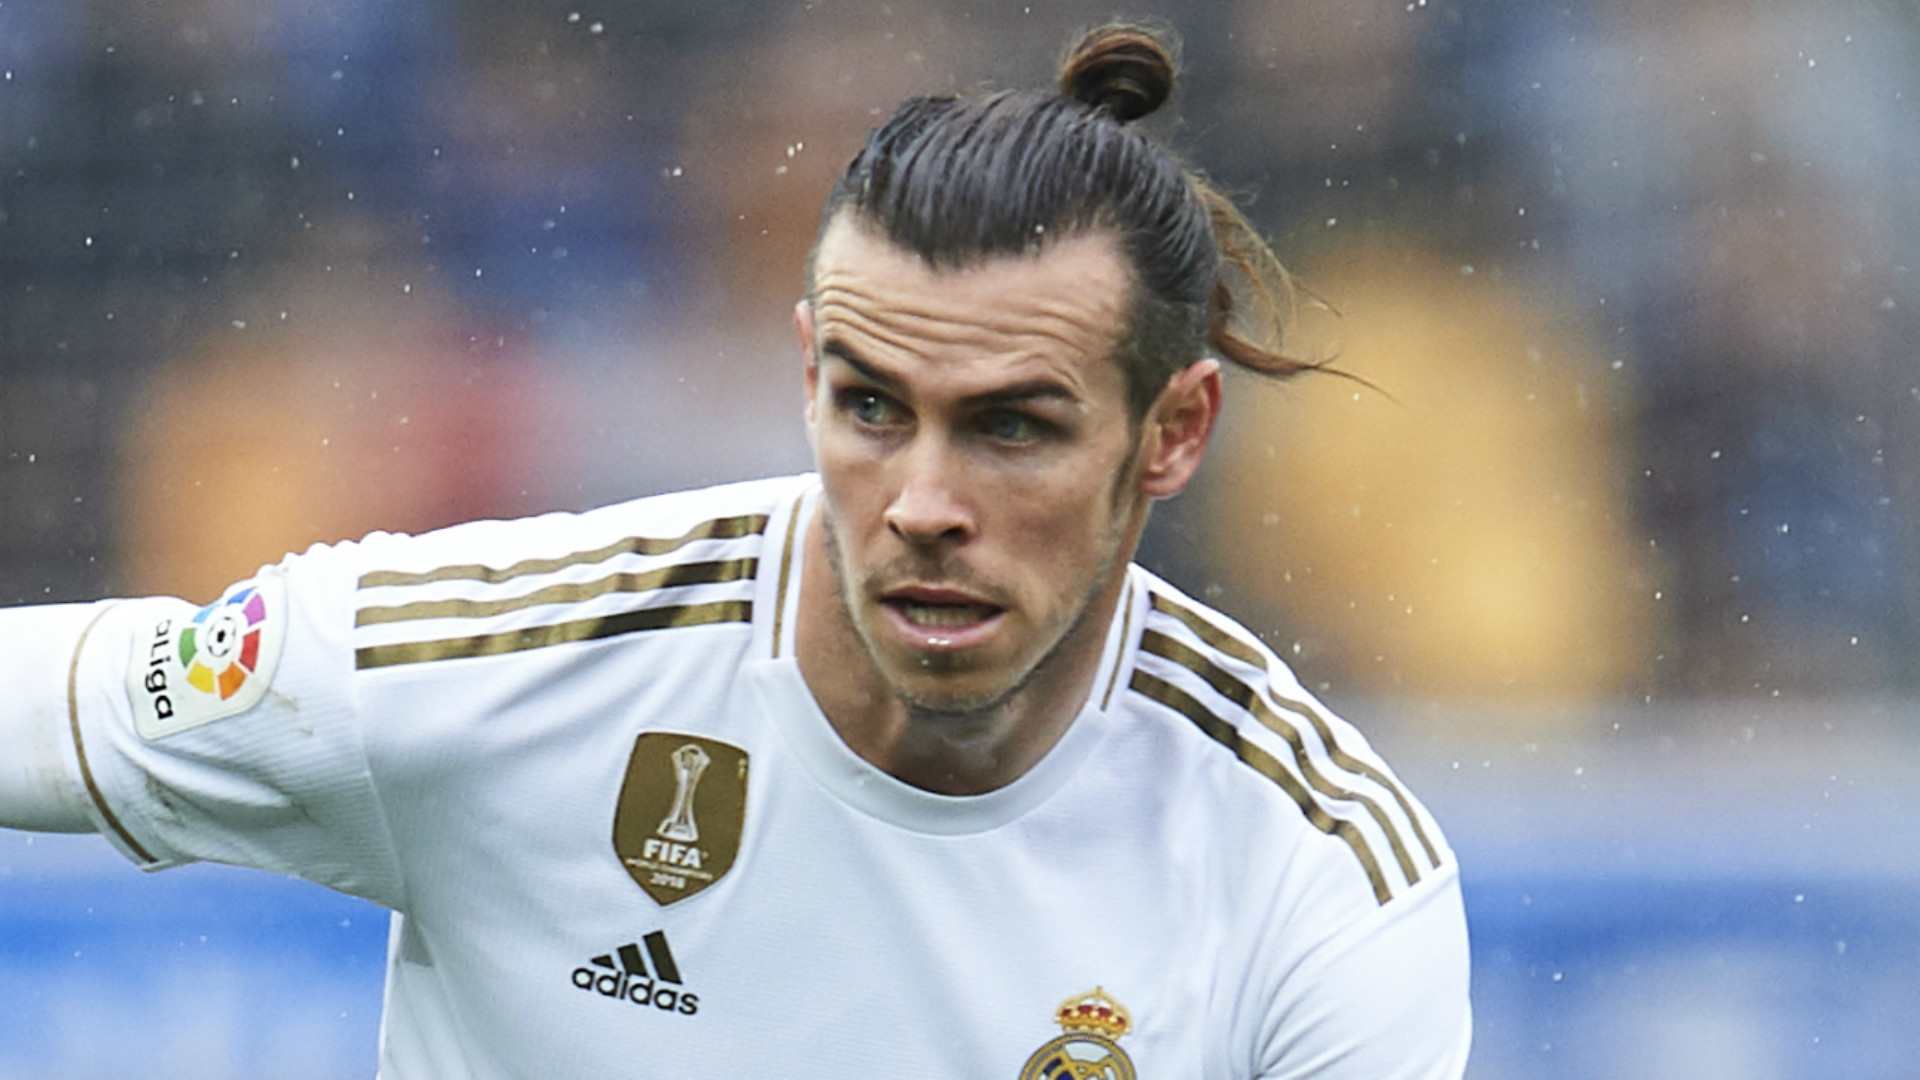 Real Madrid star Bale reveals interest in future MLS move